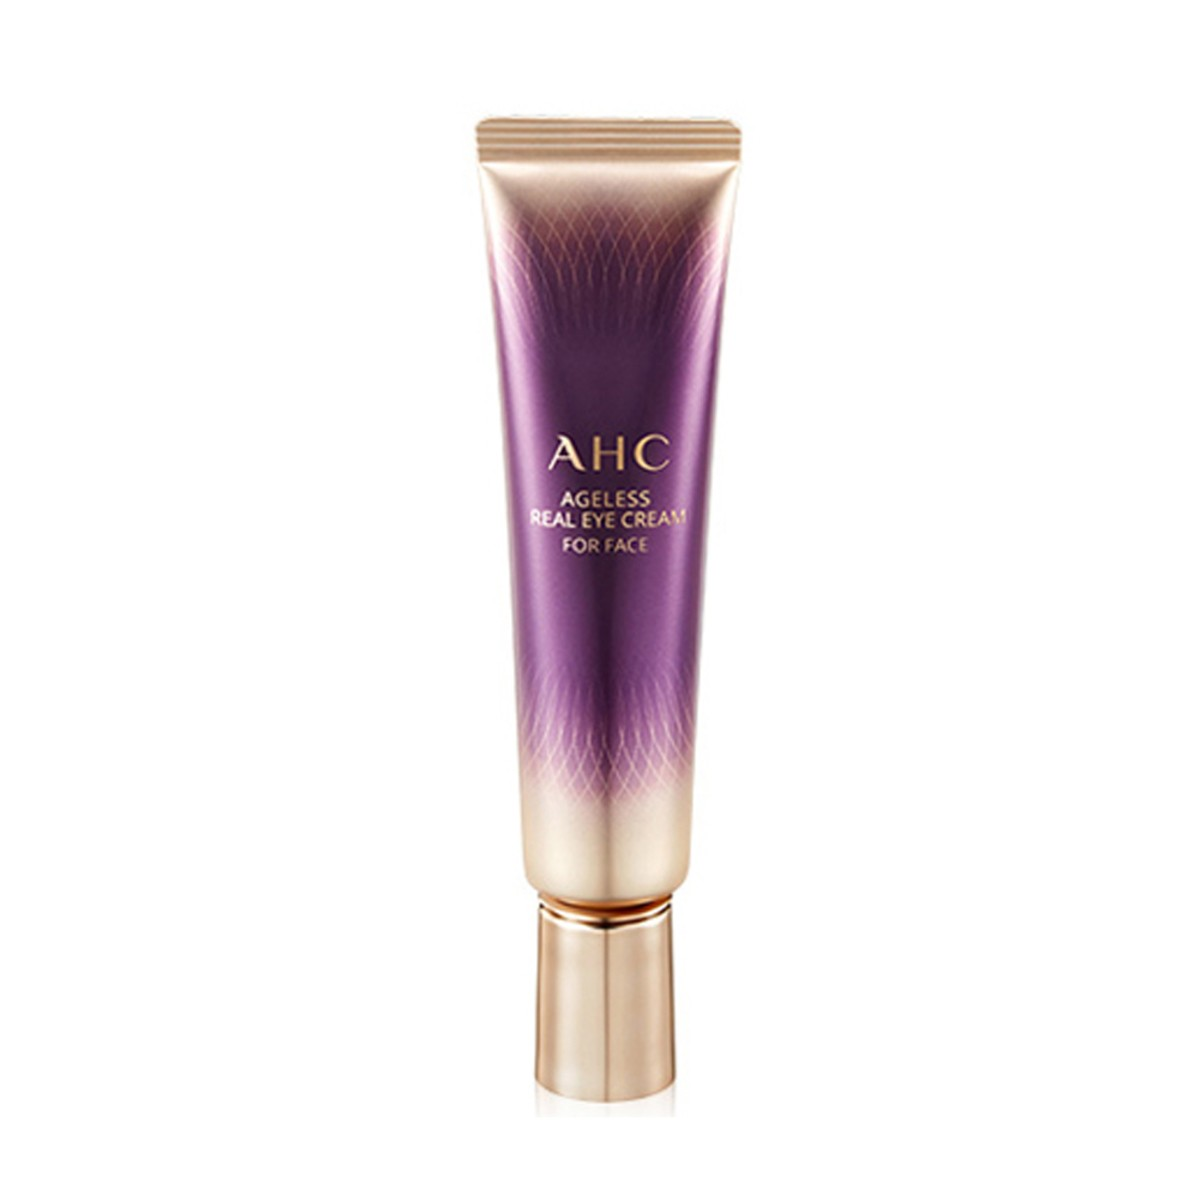 A.H.C - Ageless Real Eye Cream For Face